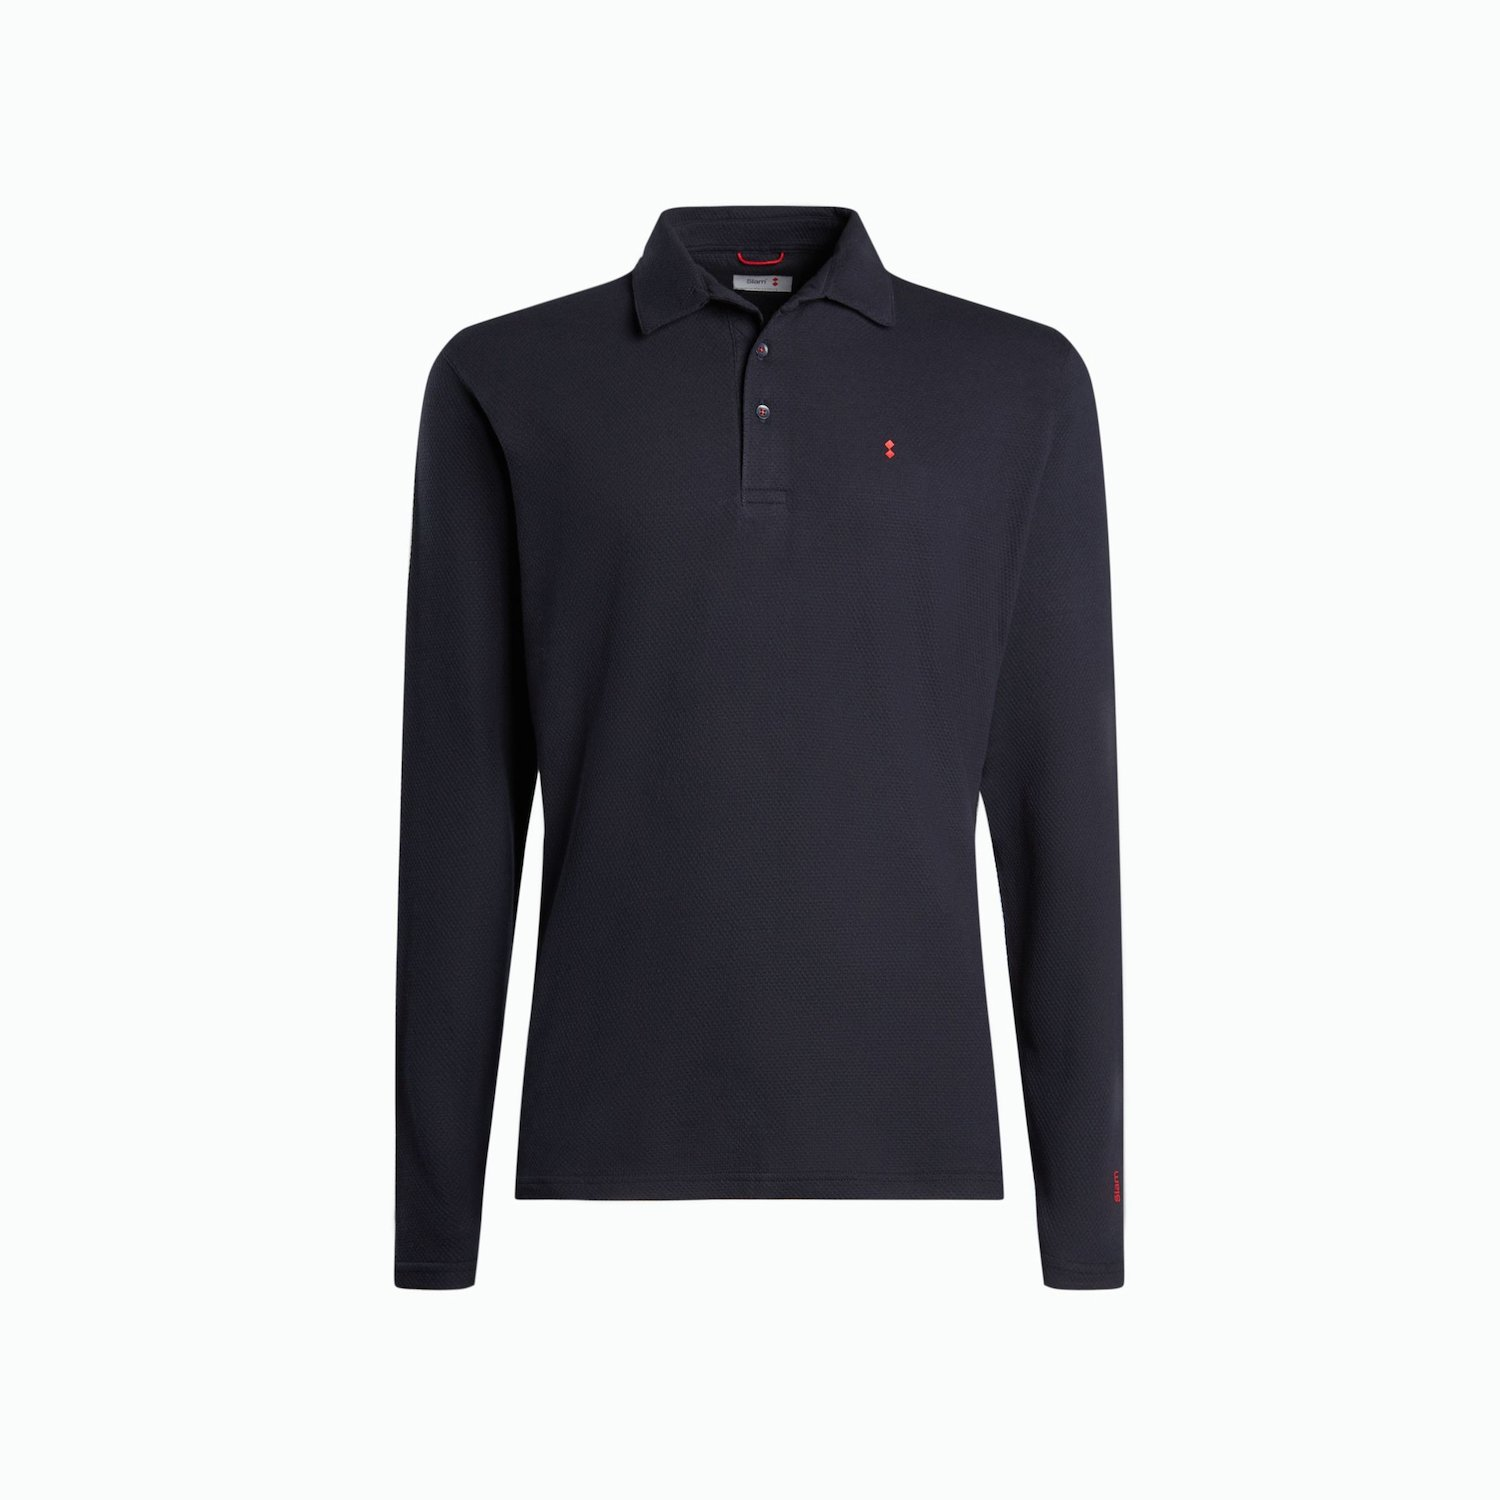 B163 polo shirt - Navy